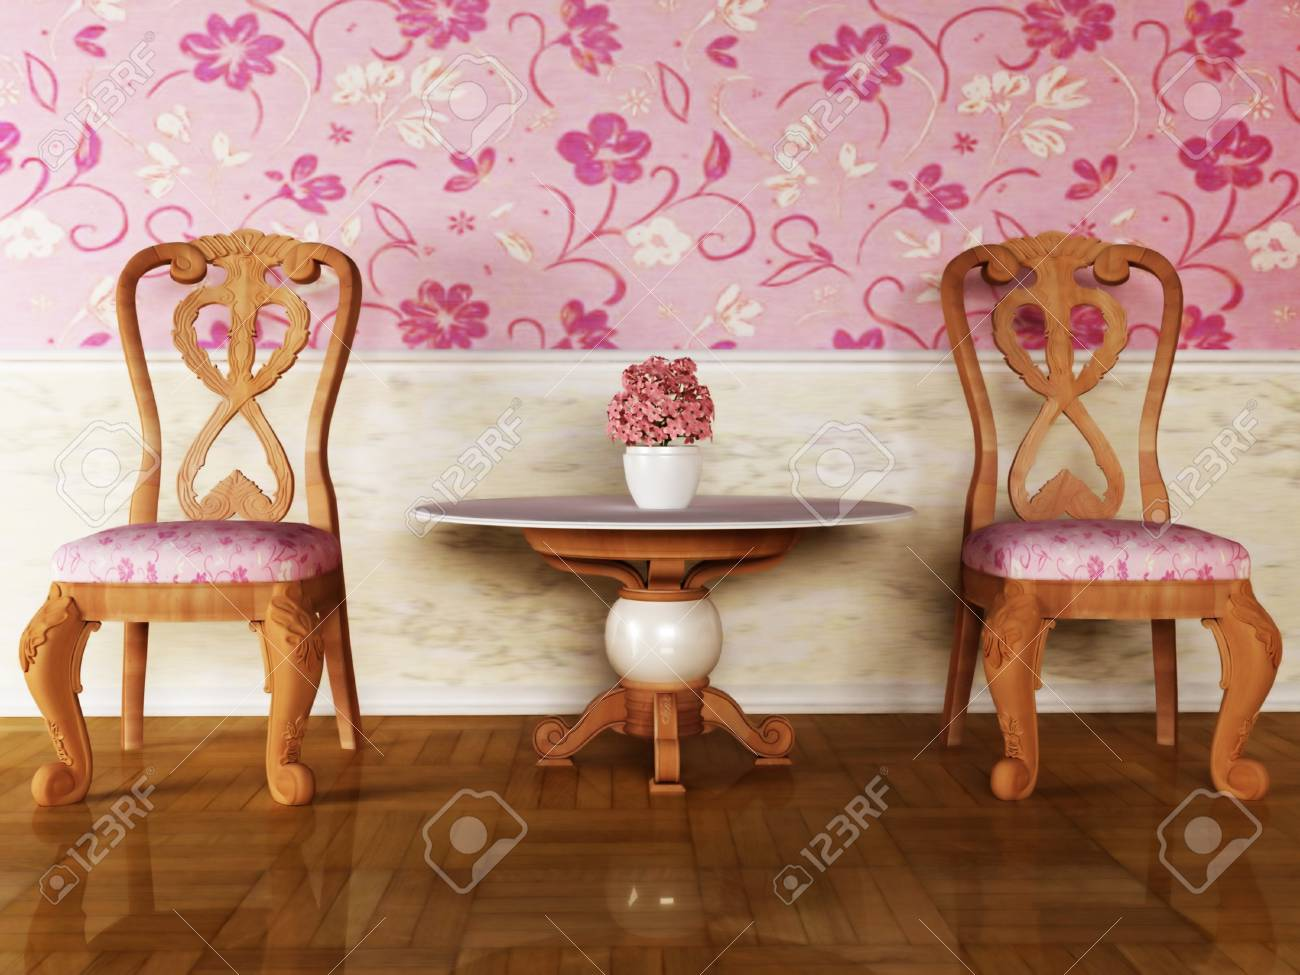 Classic interior design with two chairs and the table Stock Photo - 12974780